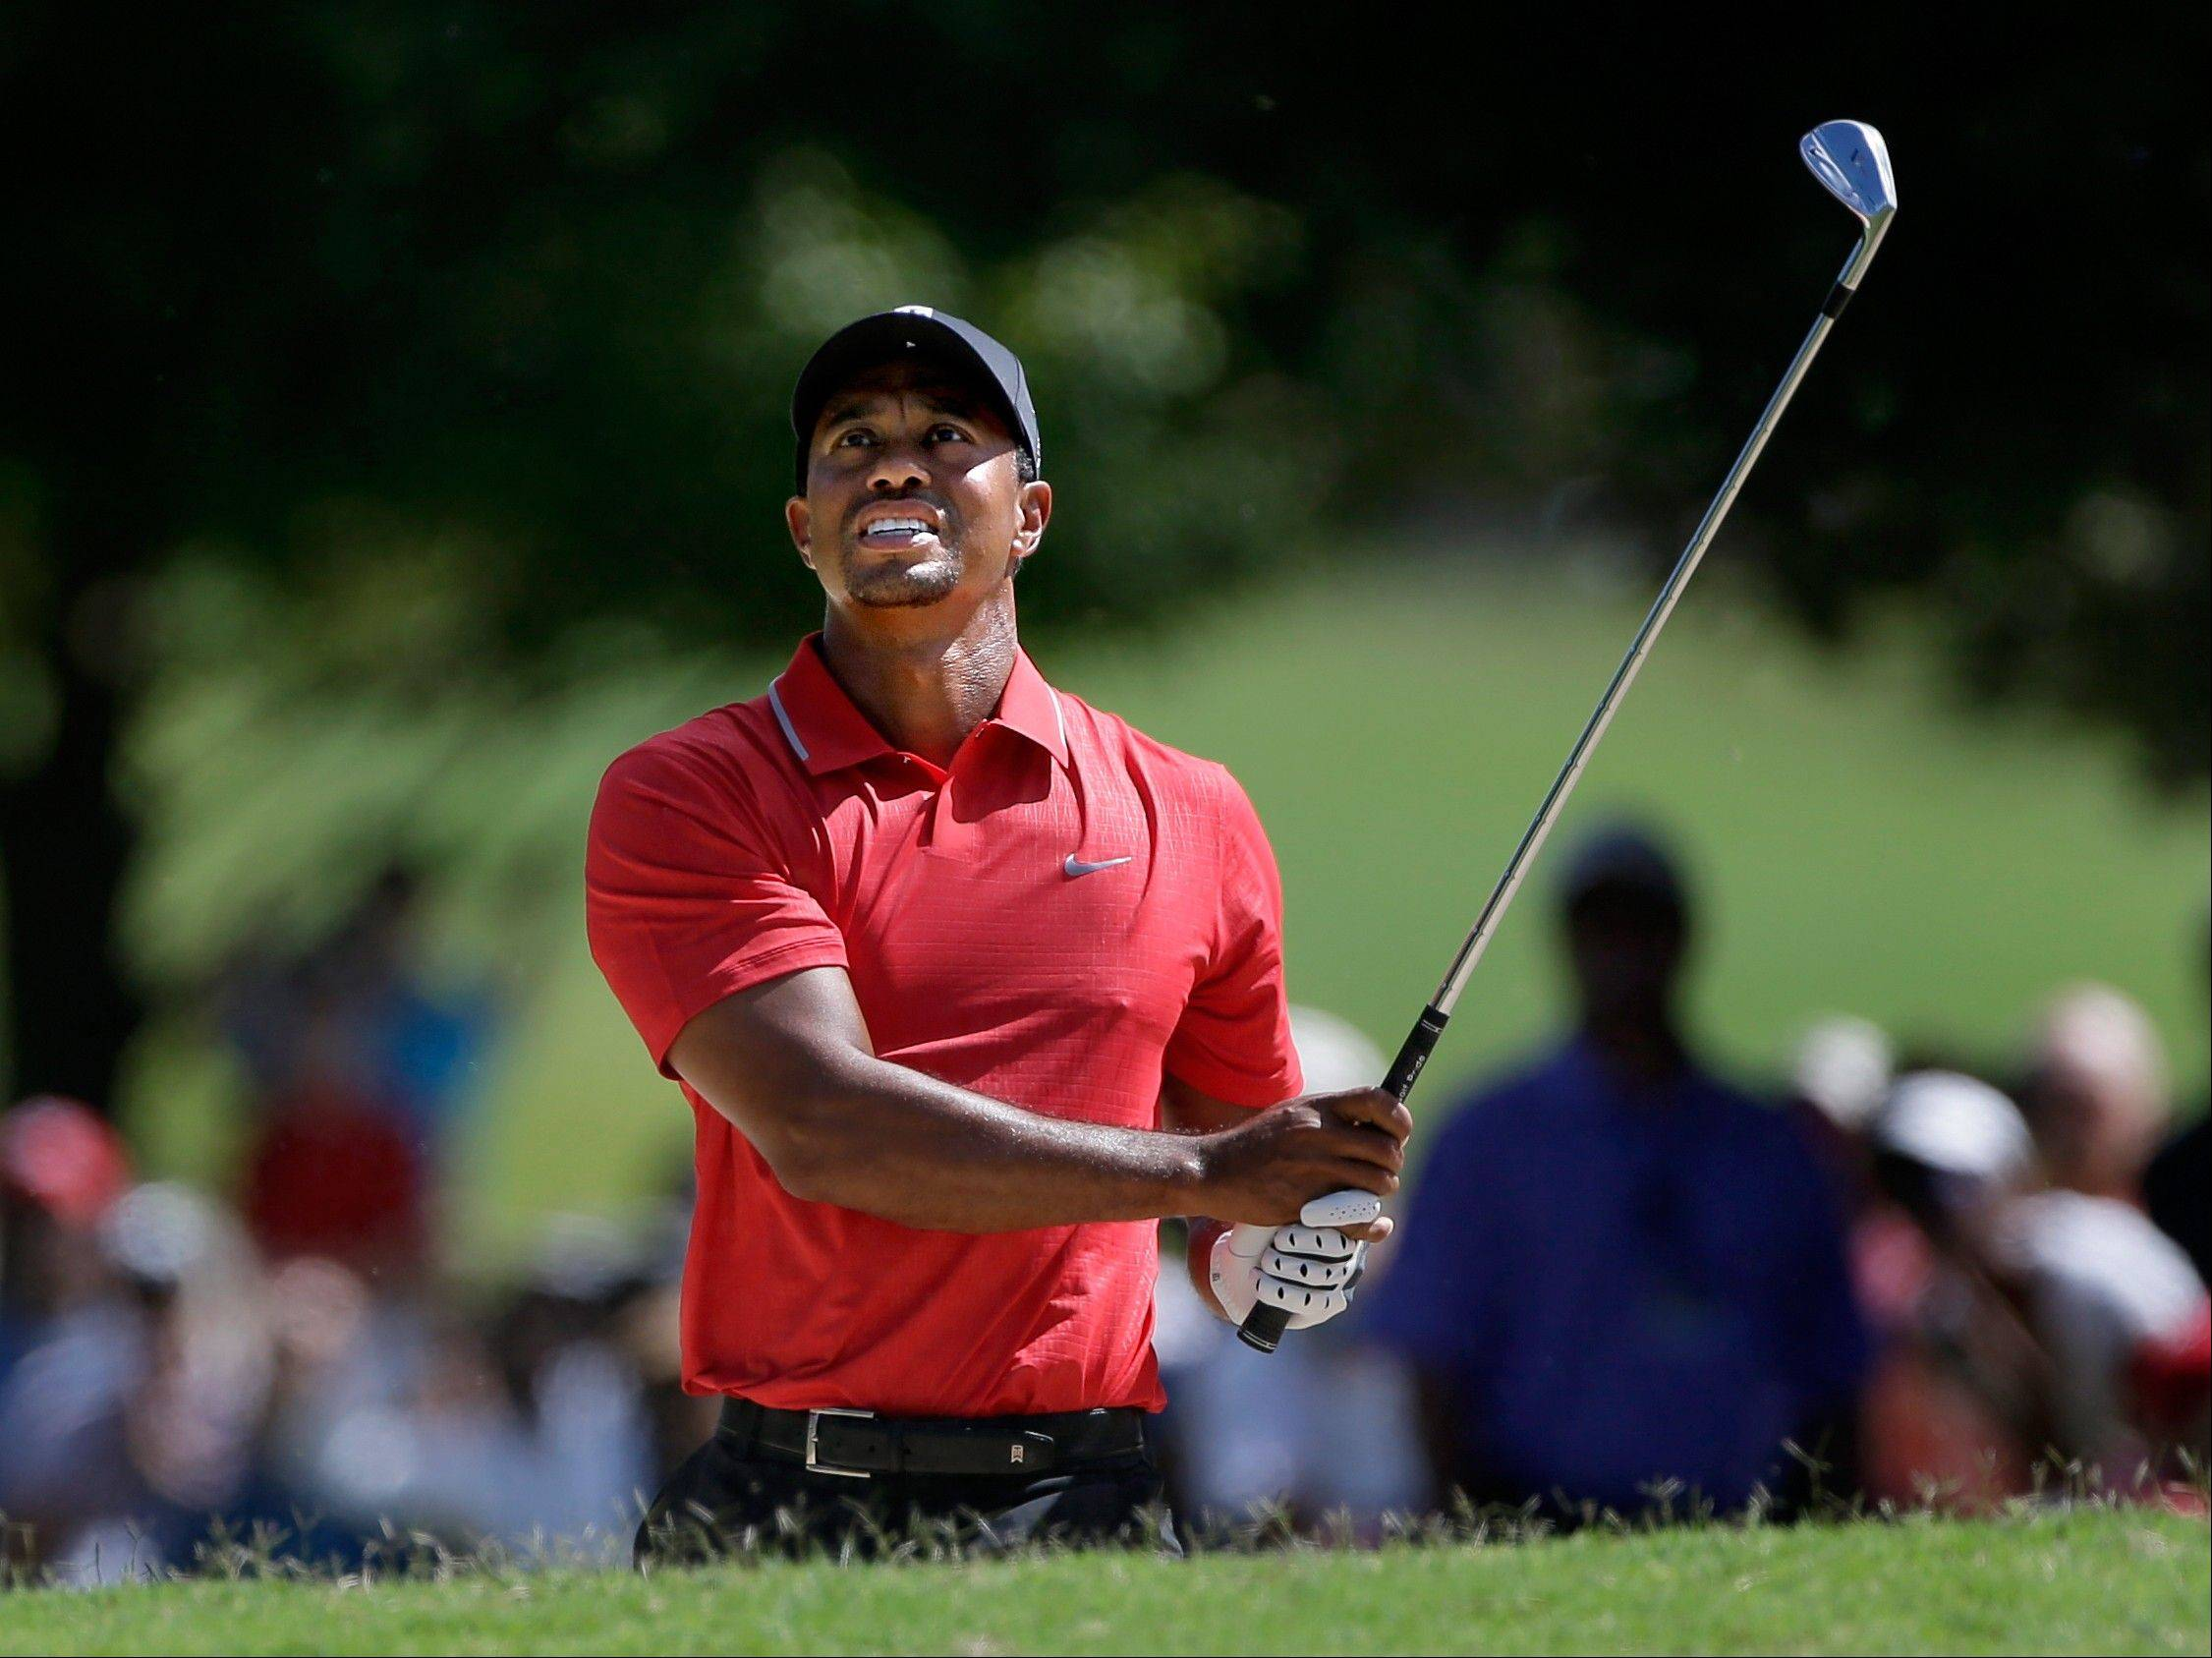 Tiger Woods hits out of the bunker on the third hole during the final round of play in the Tour Championship golf tournament at East Lake Golf Club, in Atlanta, Sunday, Sept. 22, 2013.